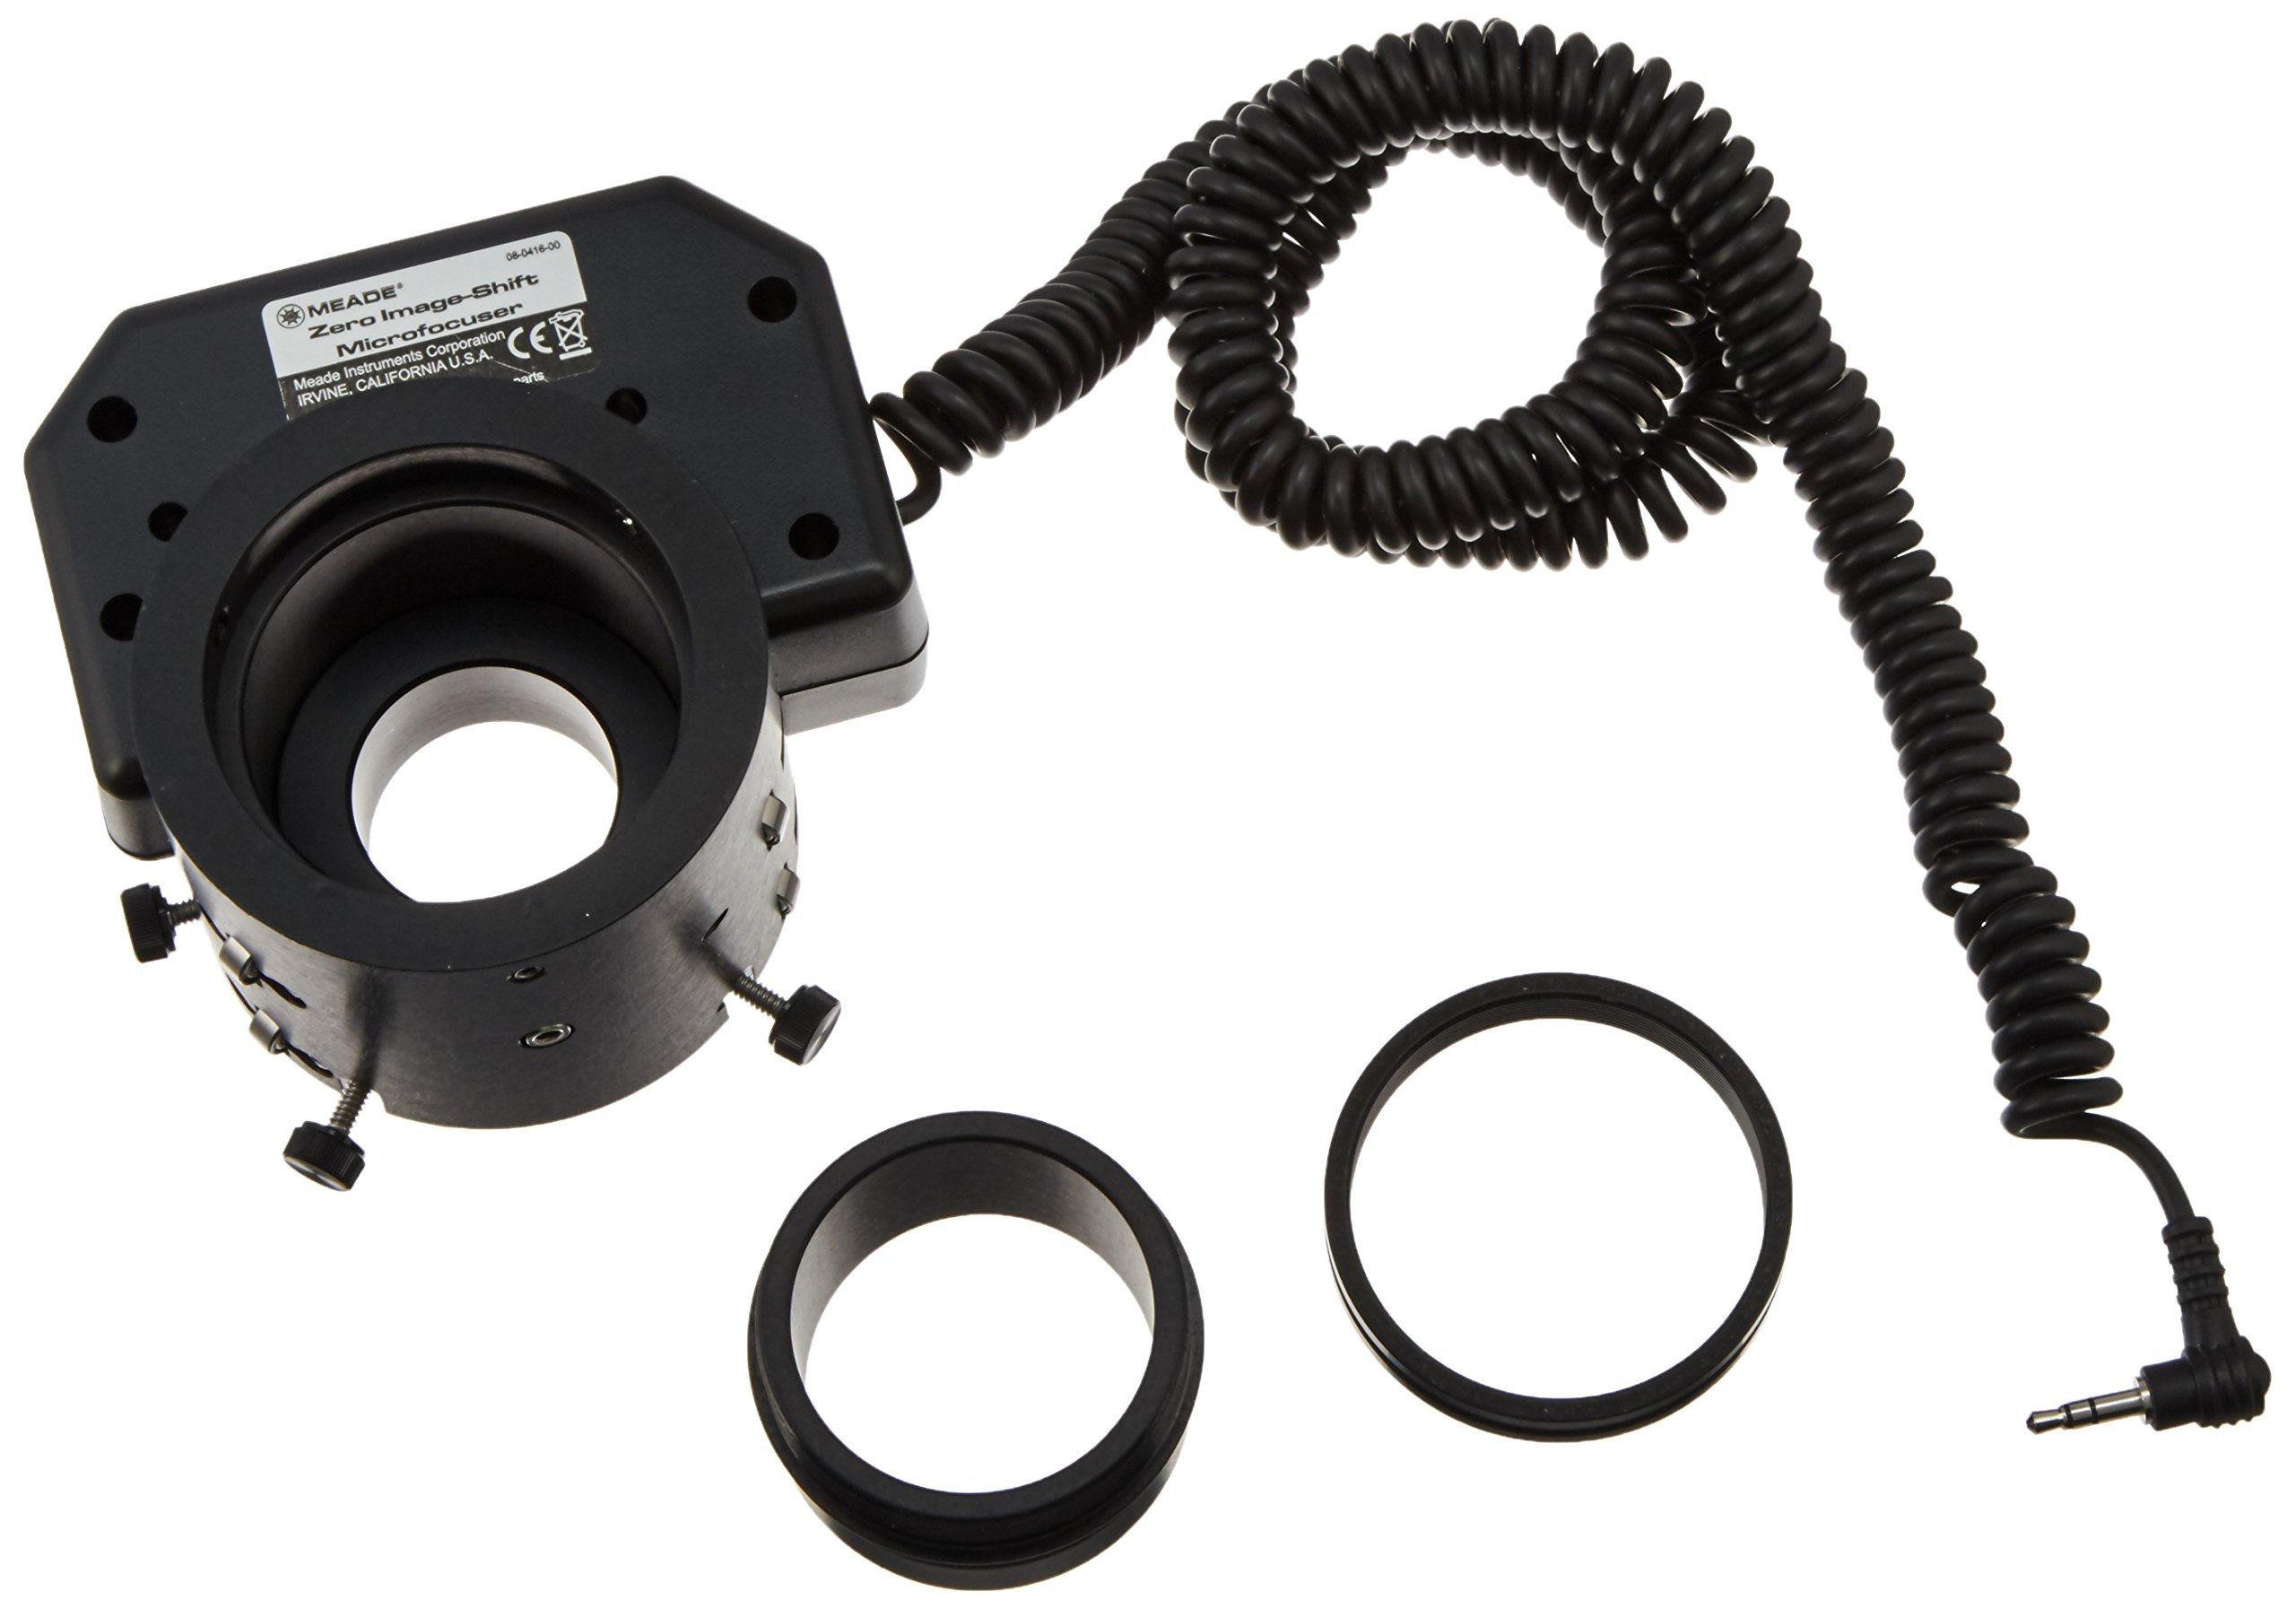 Meade Instruments 07080 Zero Image Shift-Electronic Micro-Focuser by Meade Instruments